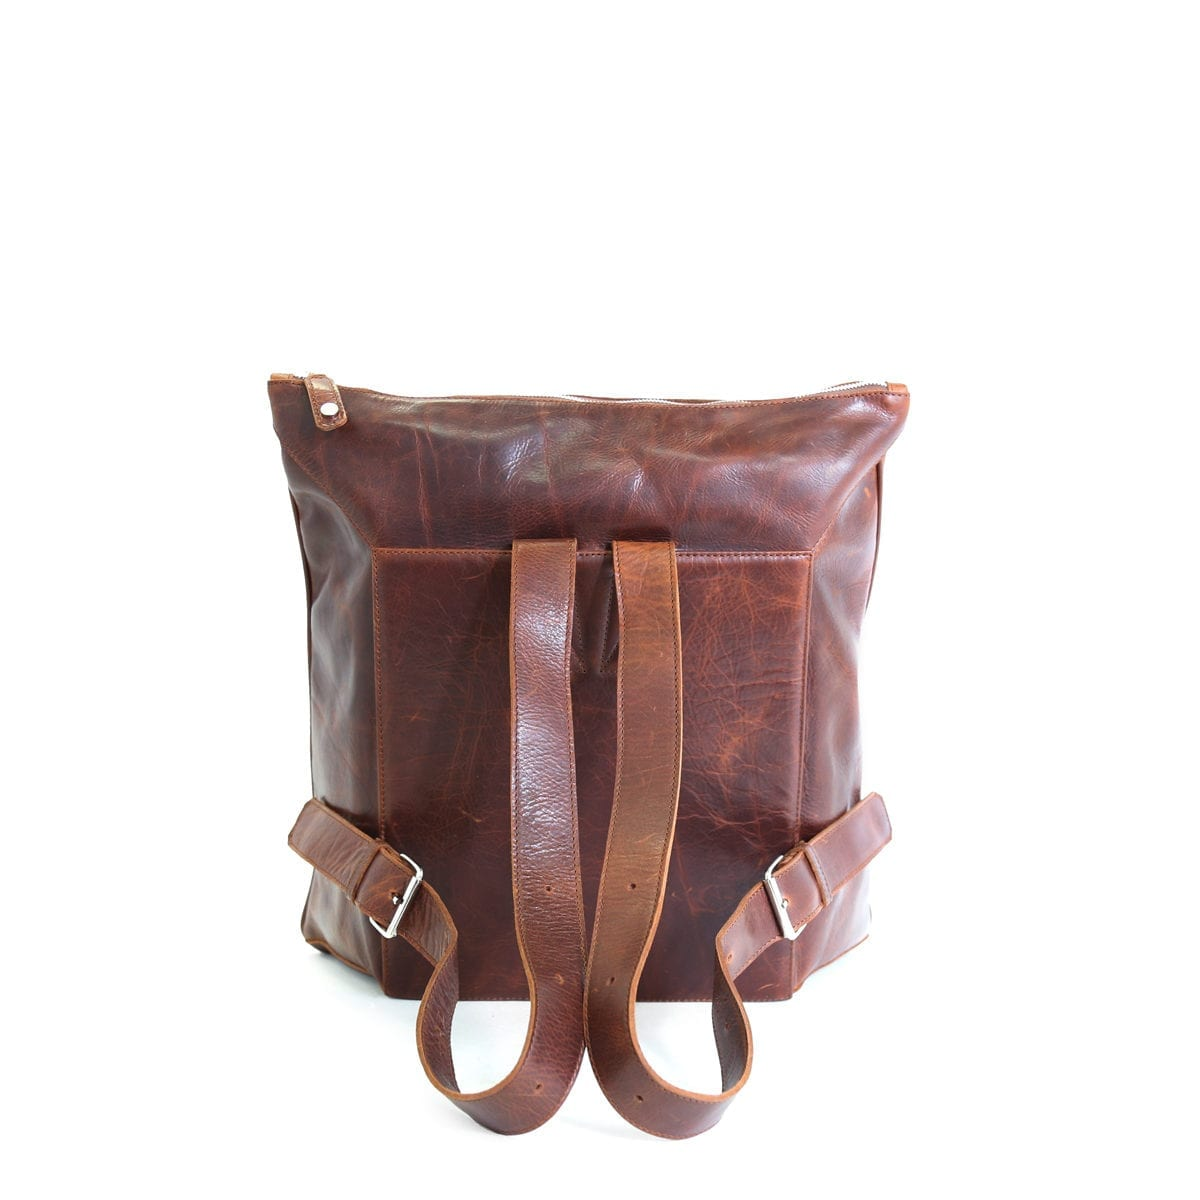 LUMI Oskar Backpack in toffee brown.